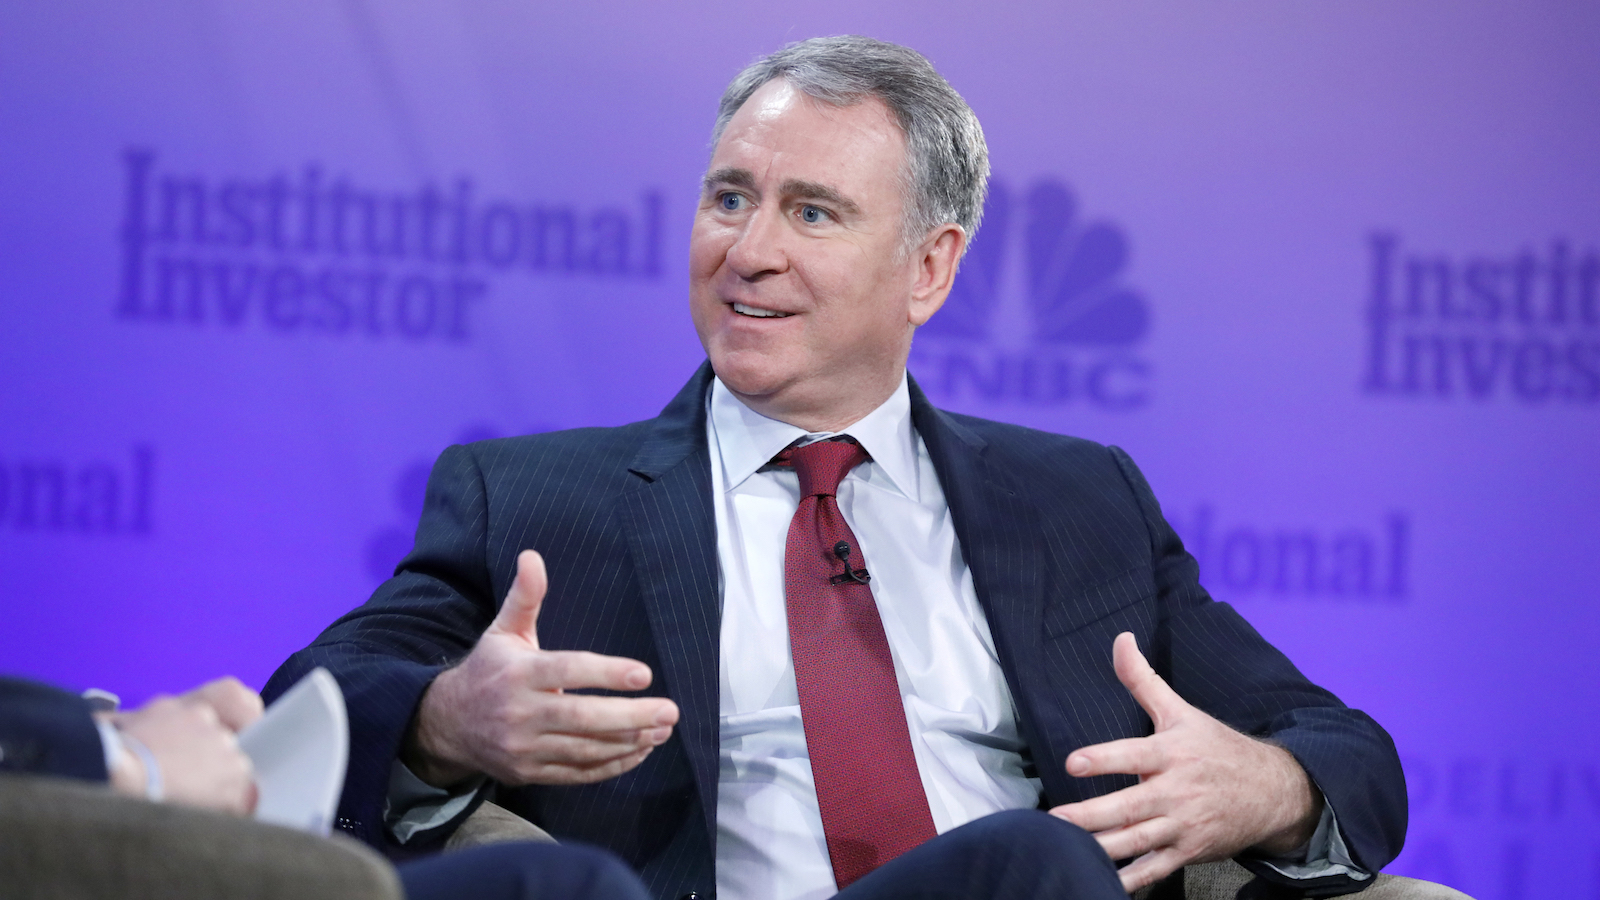 Citadel's Kenneth Griffin says